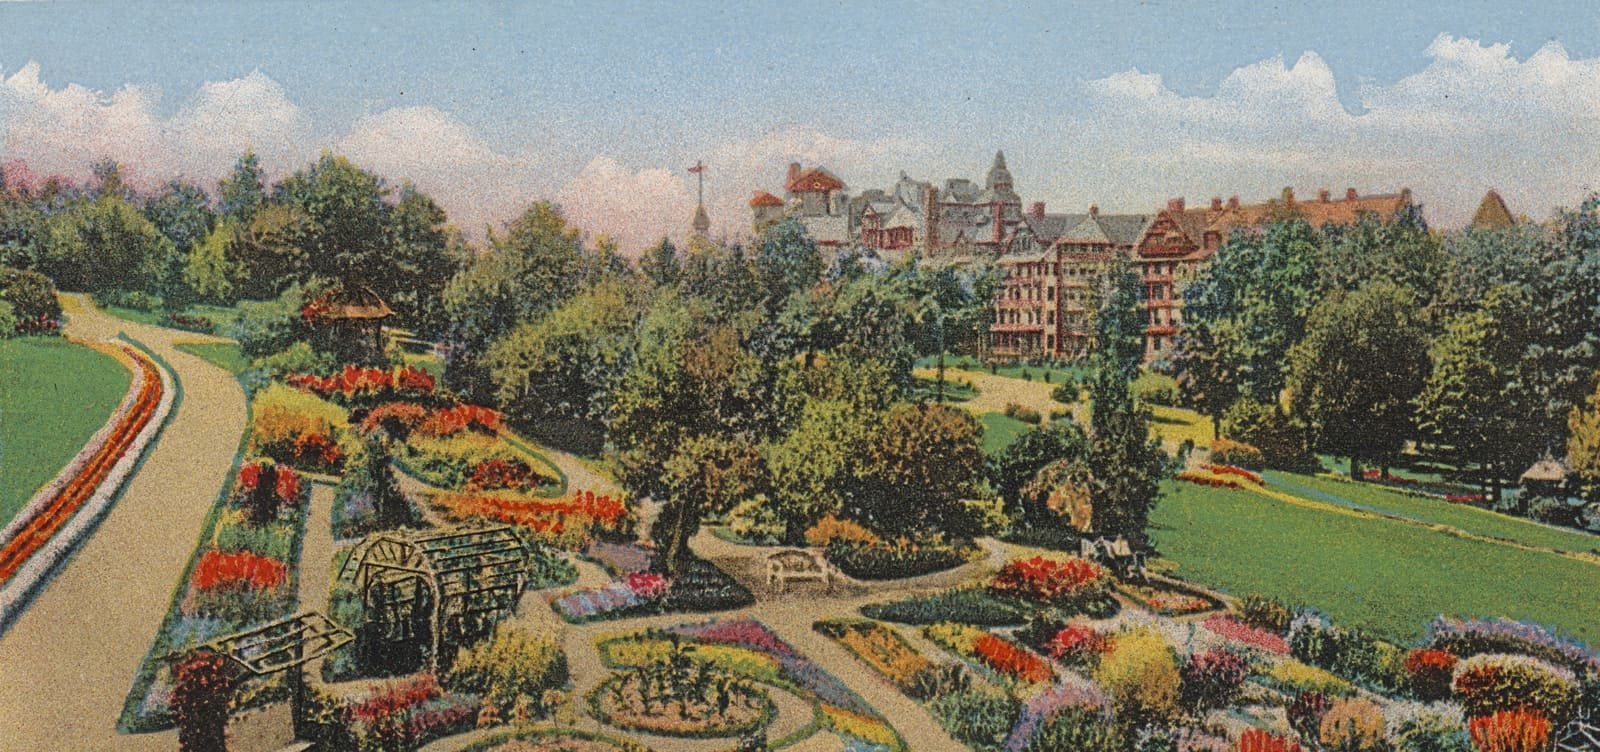 Post Card of Mohonk Garden